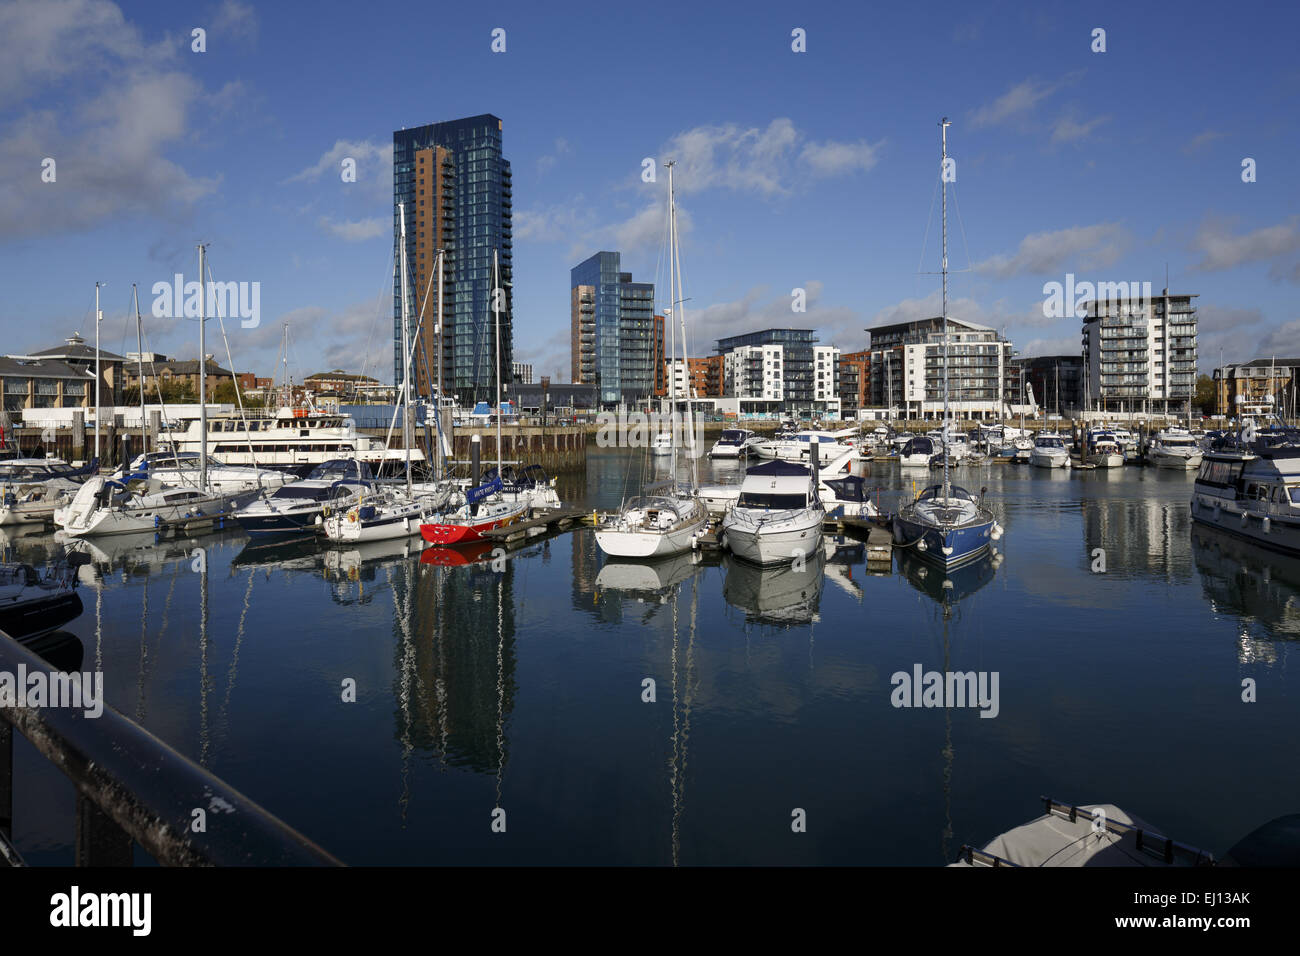 The 26 storey Moresby Tower dwarfing the other buildings at Admirals Quay, Ocean Village, Southampton England - Stock Image